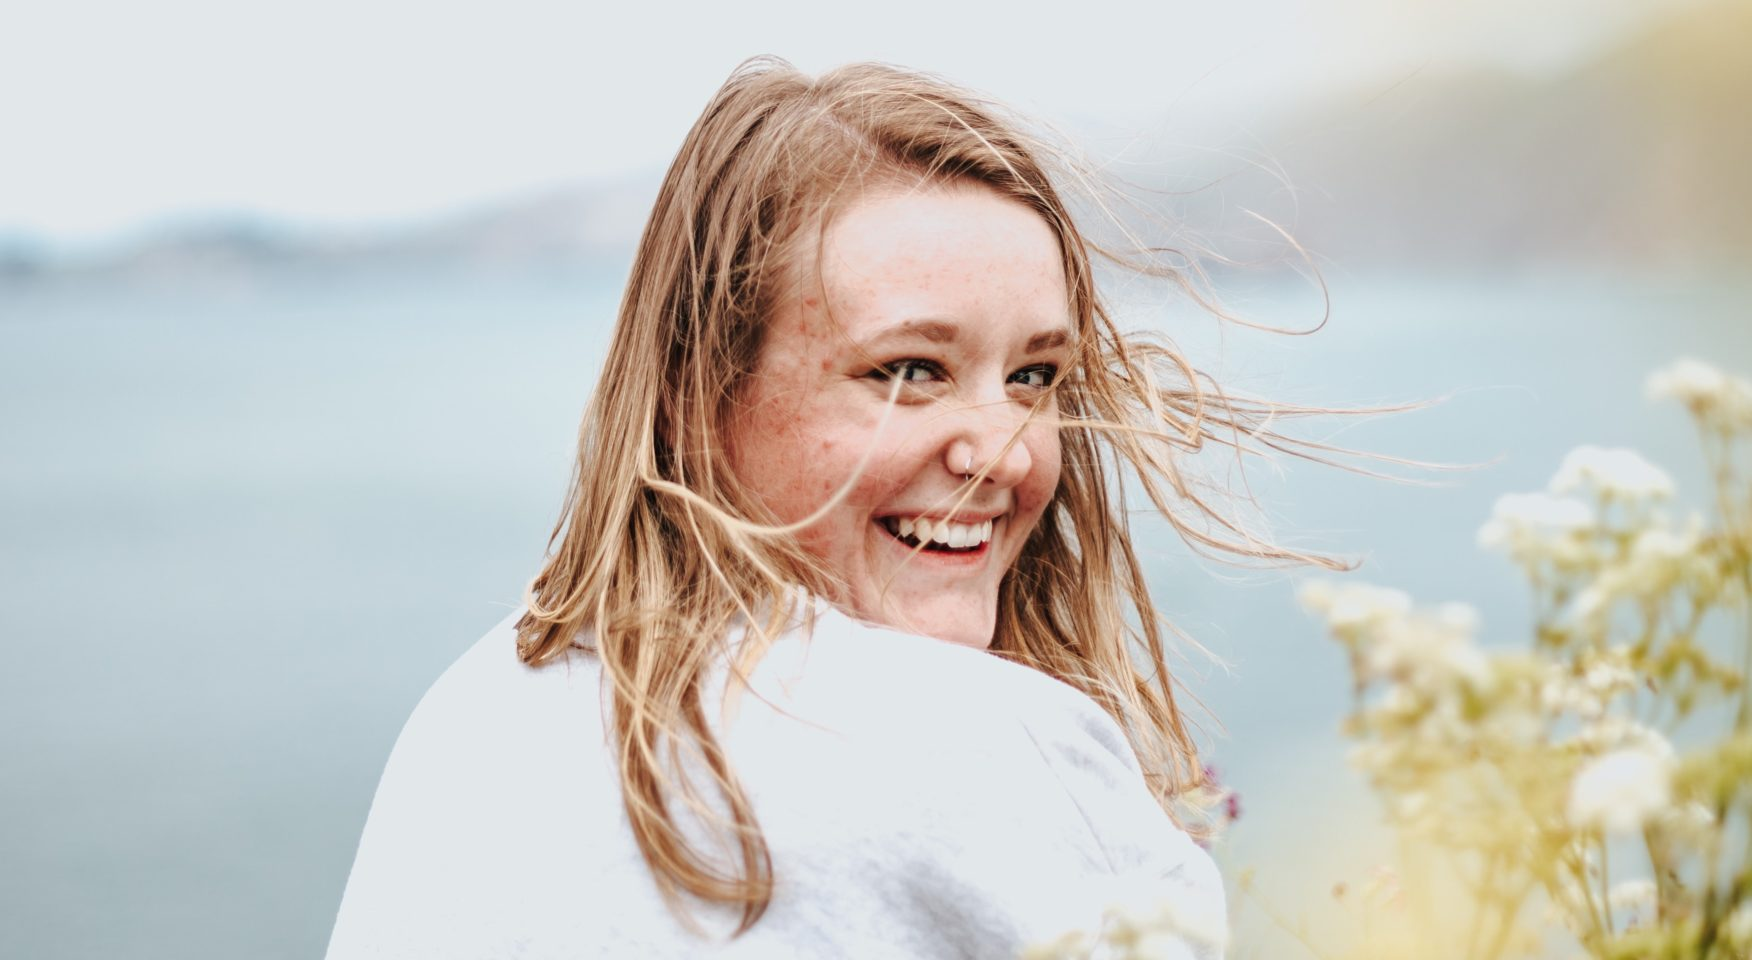 smiling woman with strawberry blonde hair on a windy day